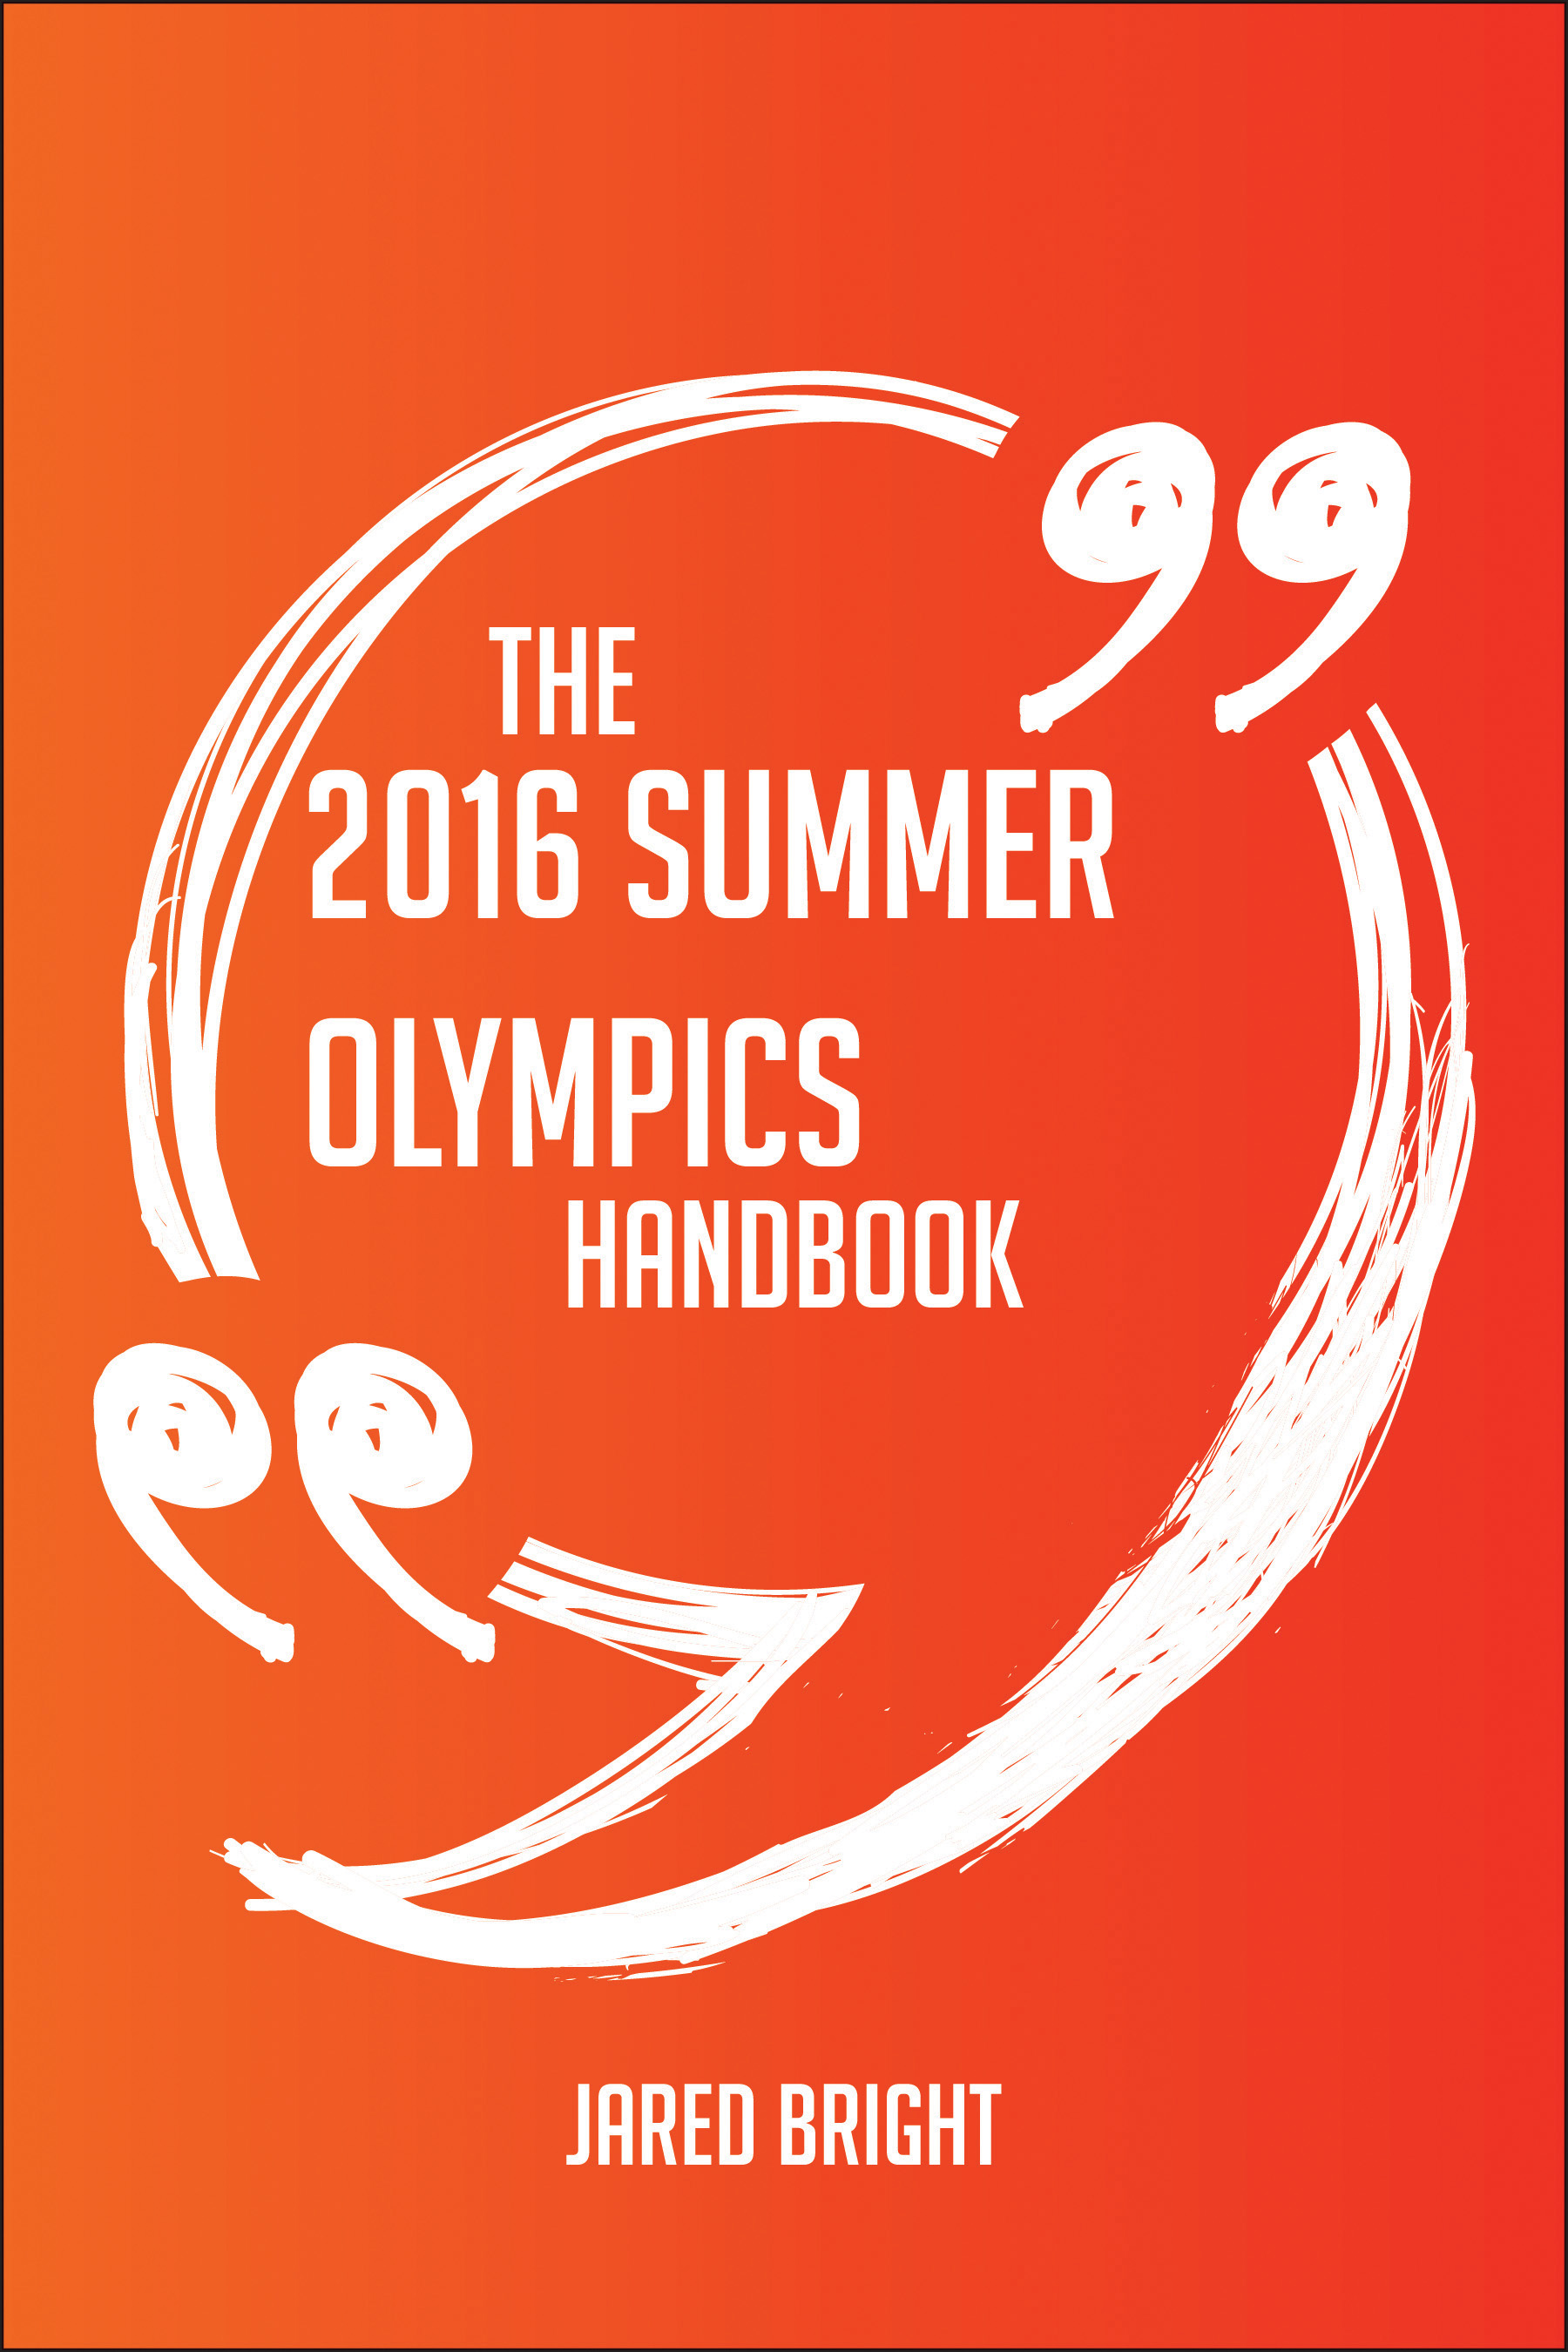 The 2016 Summer Olympics Handbook - Everything You Need To Know About 2016 Summer Olympics